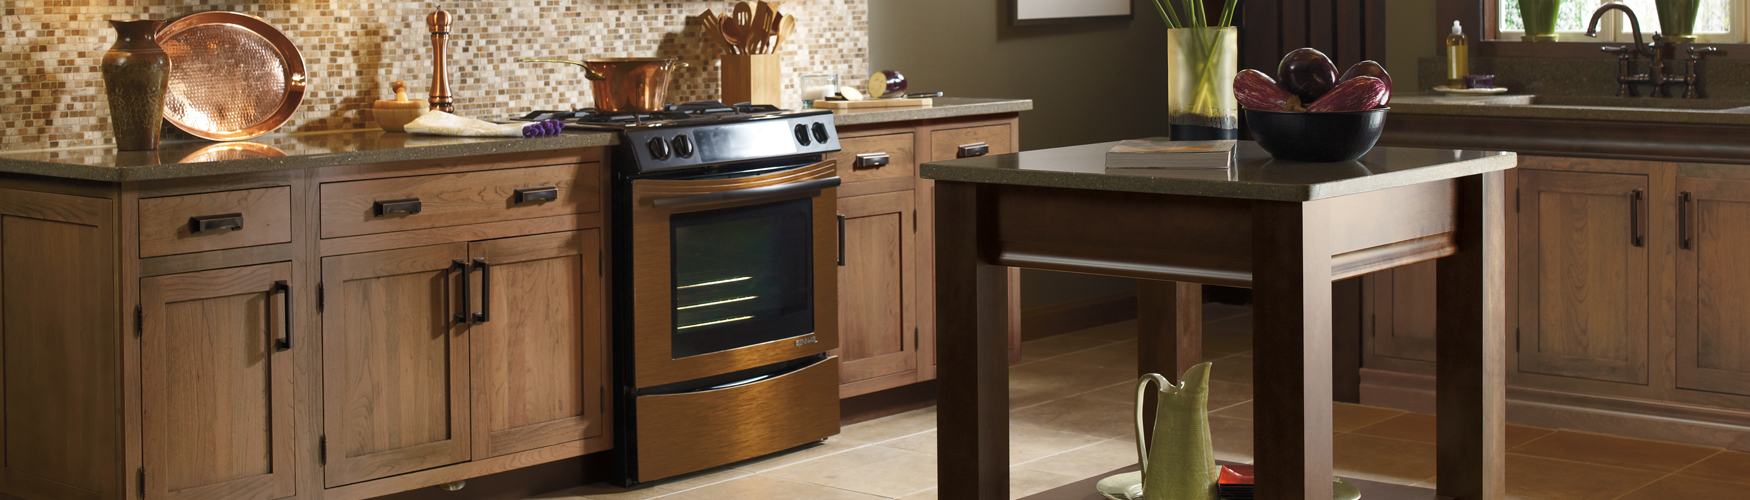 Kitchen Cabinets Colorado Springs Cabinets in Colorado Springs & Denver, CO | Front Range Cabinets